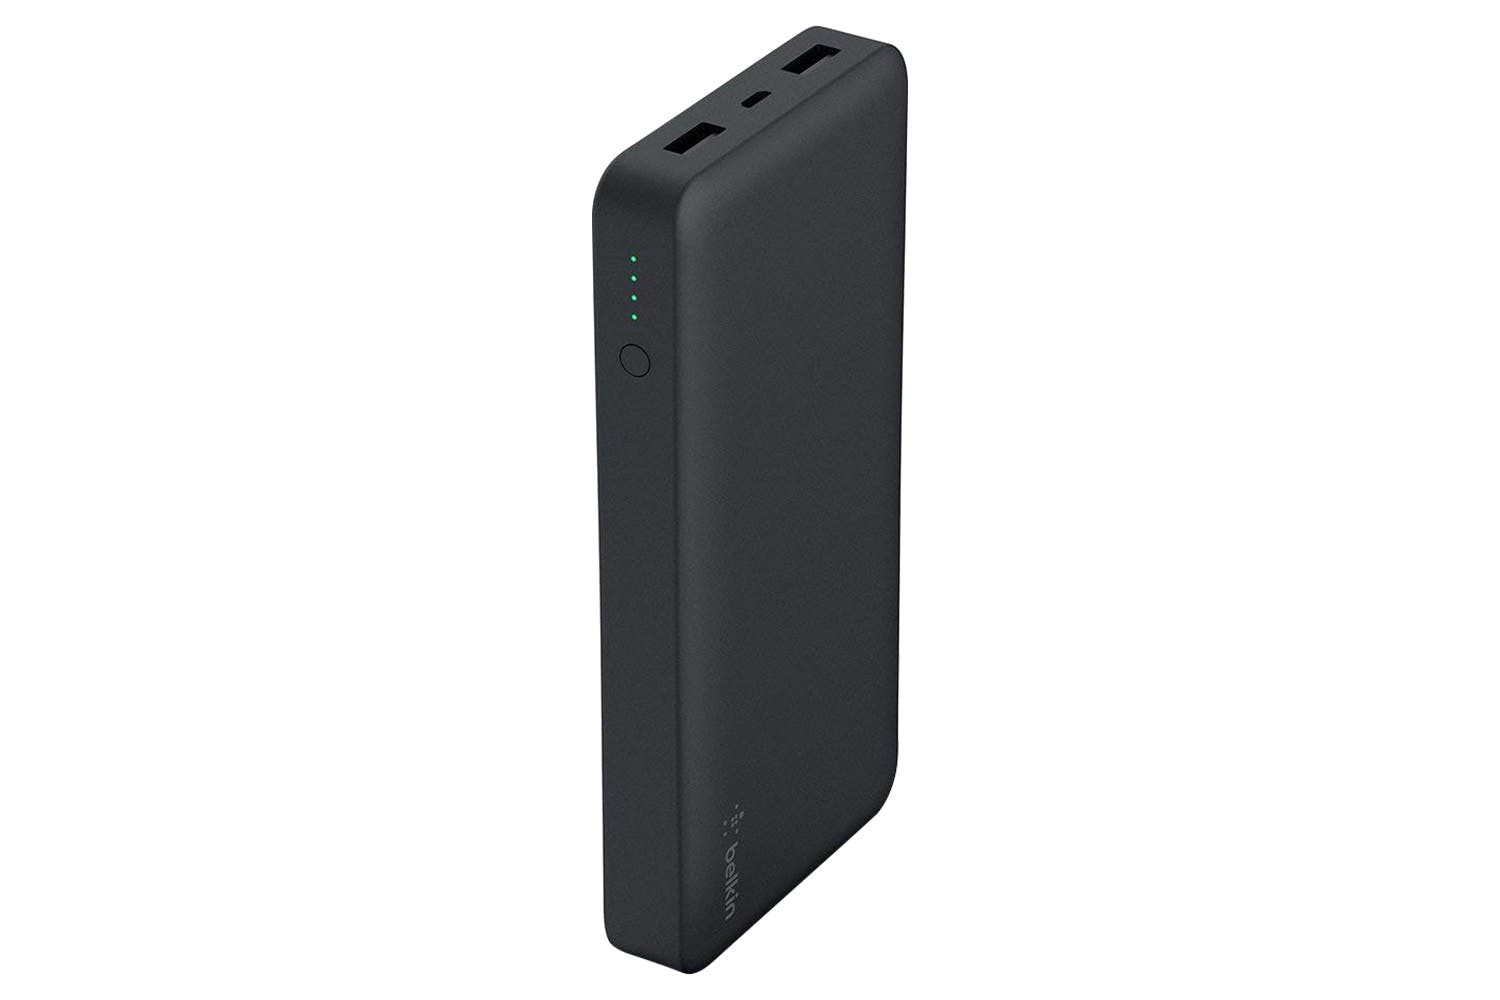 Belkin Pocket 15000mAh Power Bank | Black